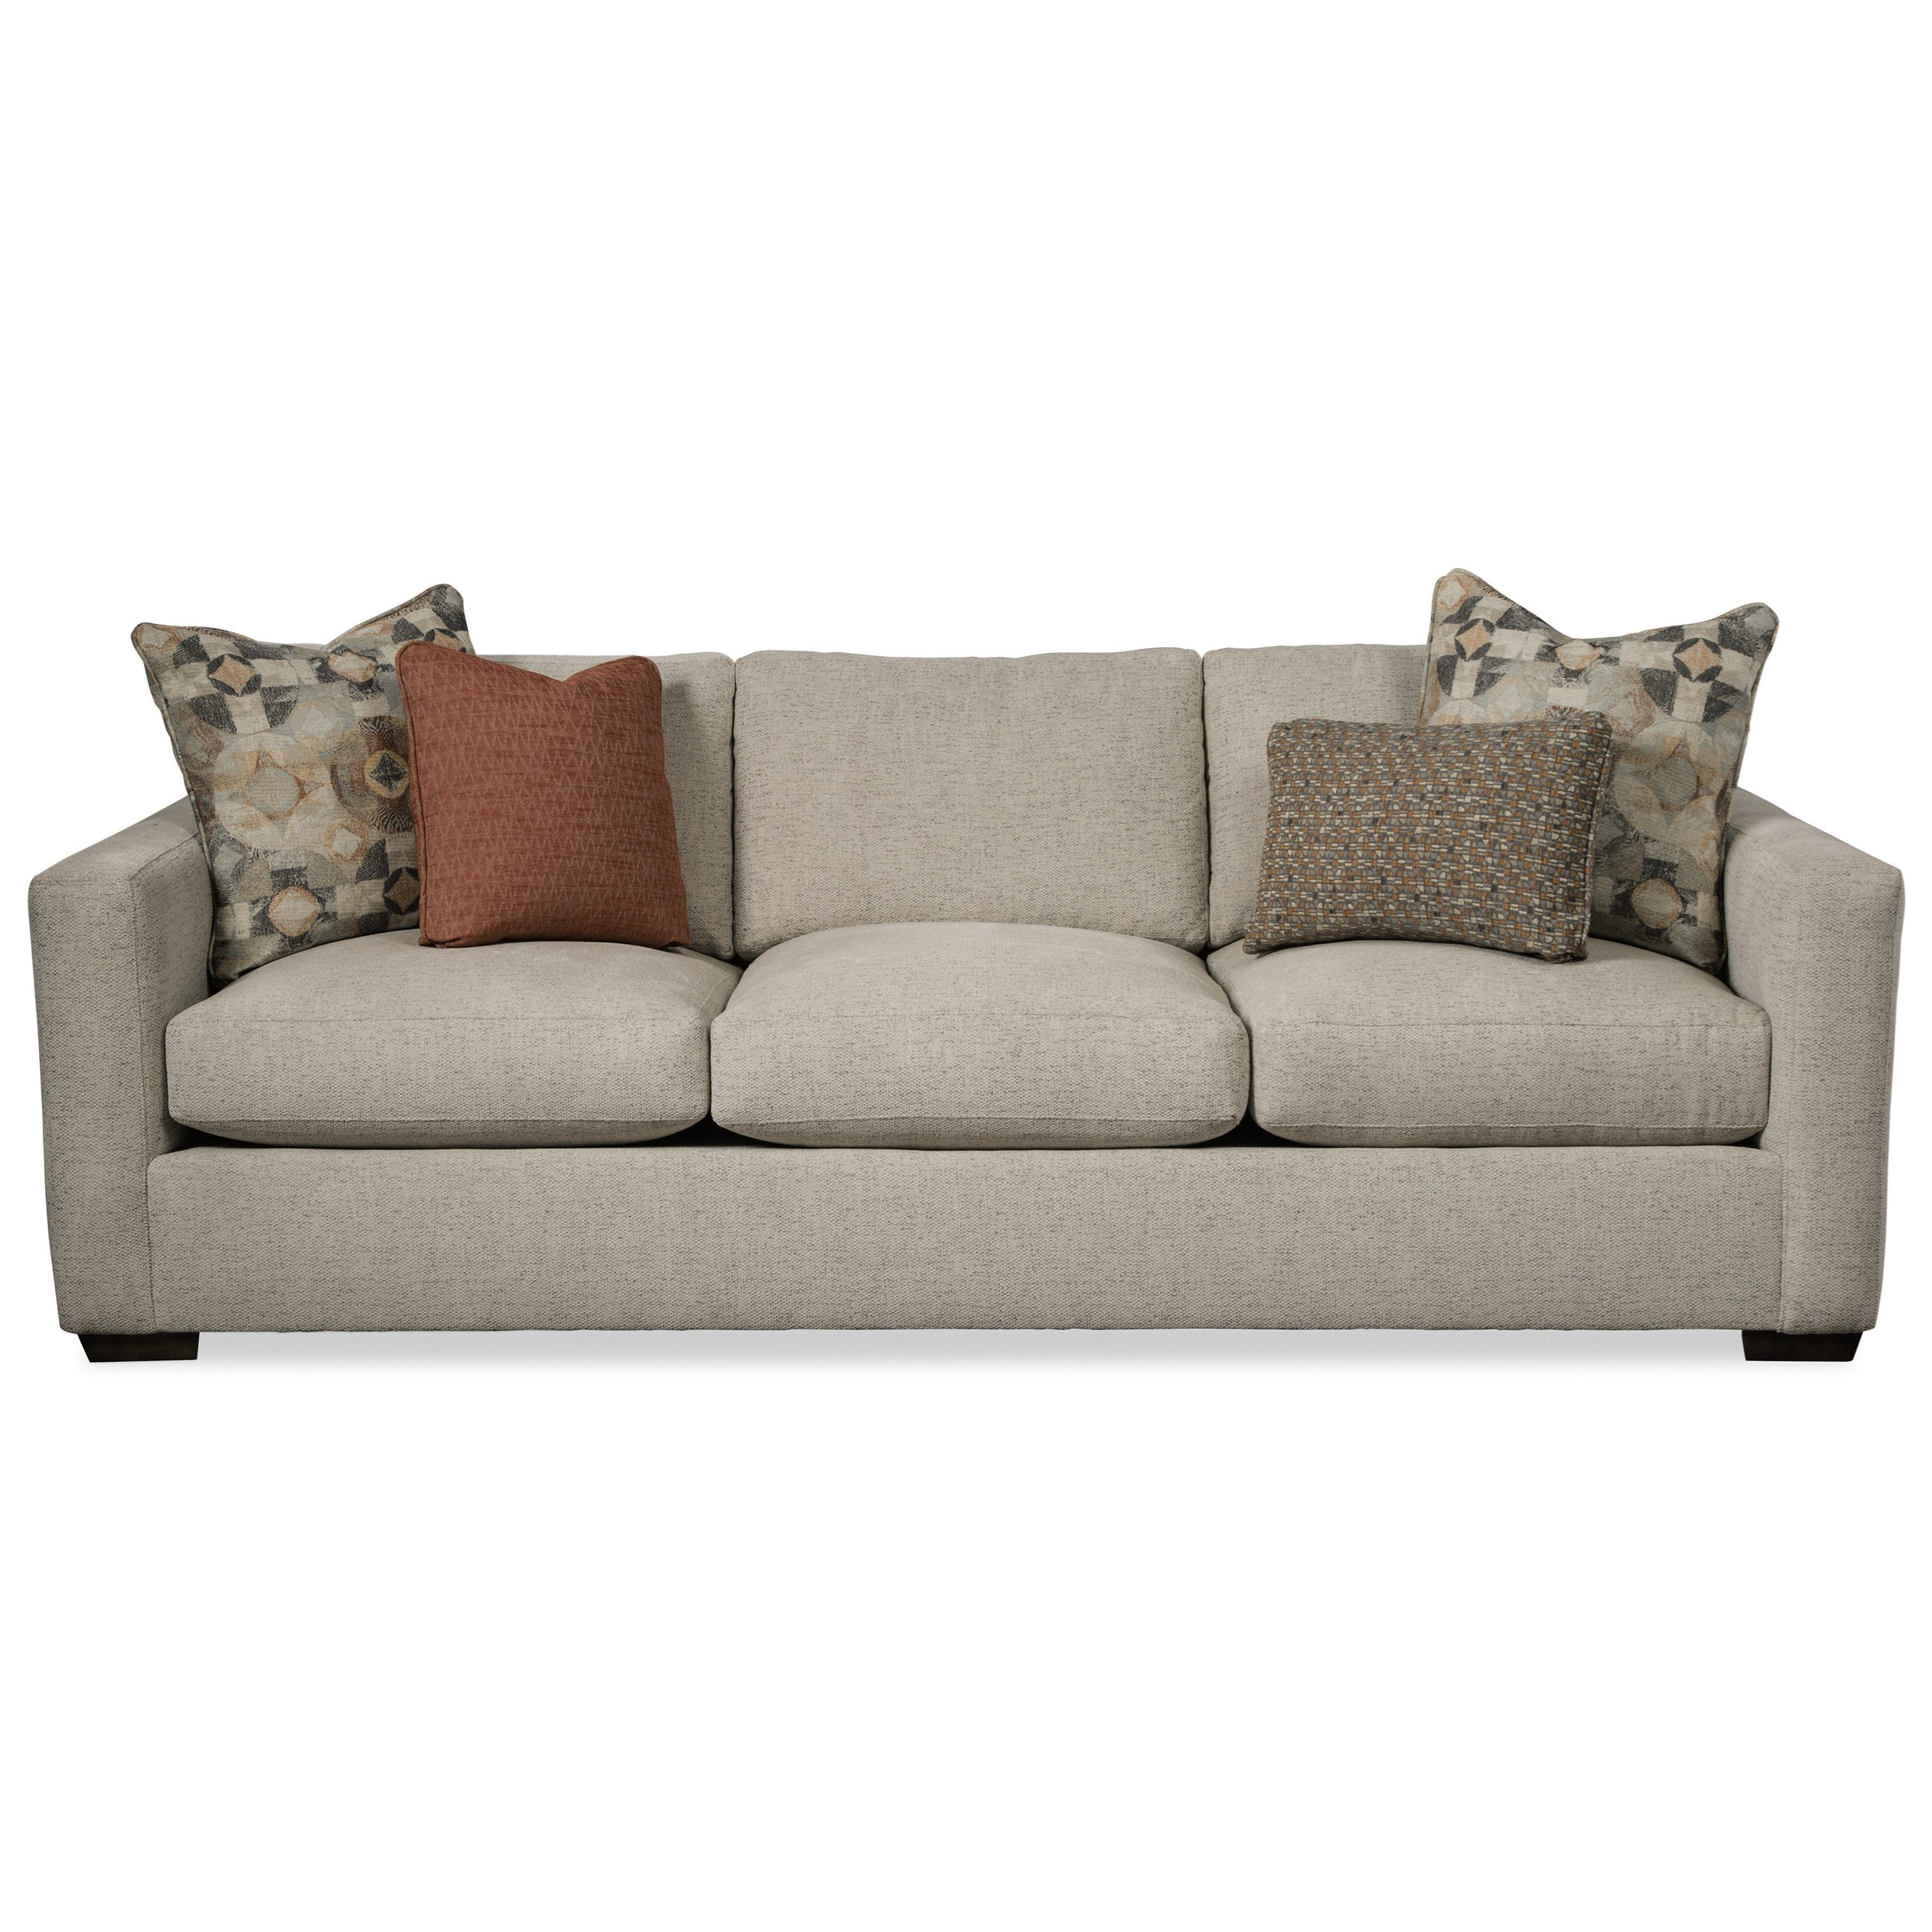 792750BD Sofa by Craftmaster at Baer's Furniture